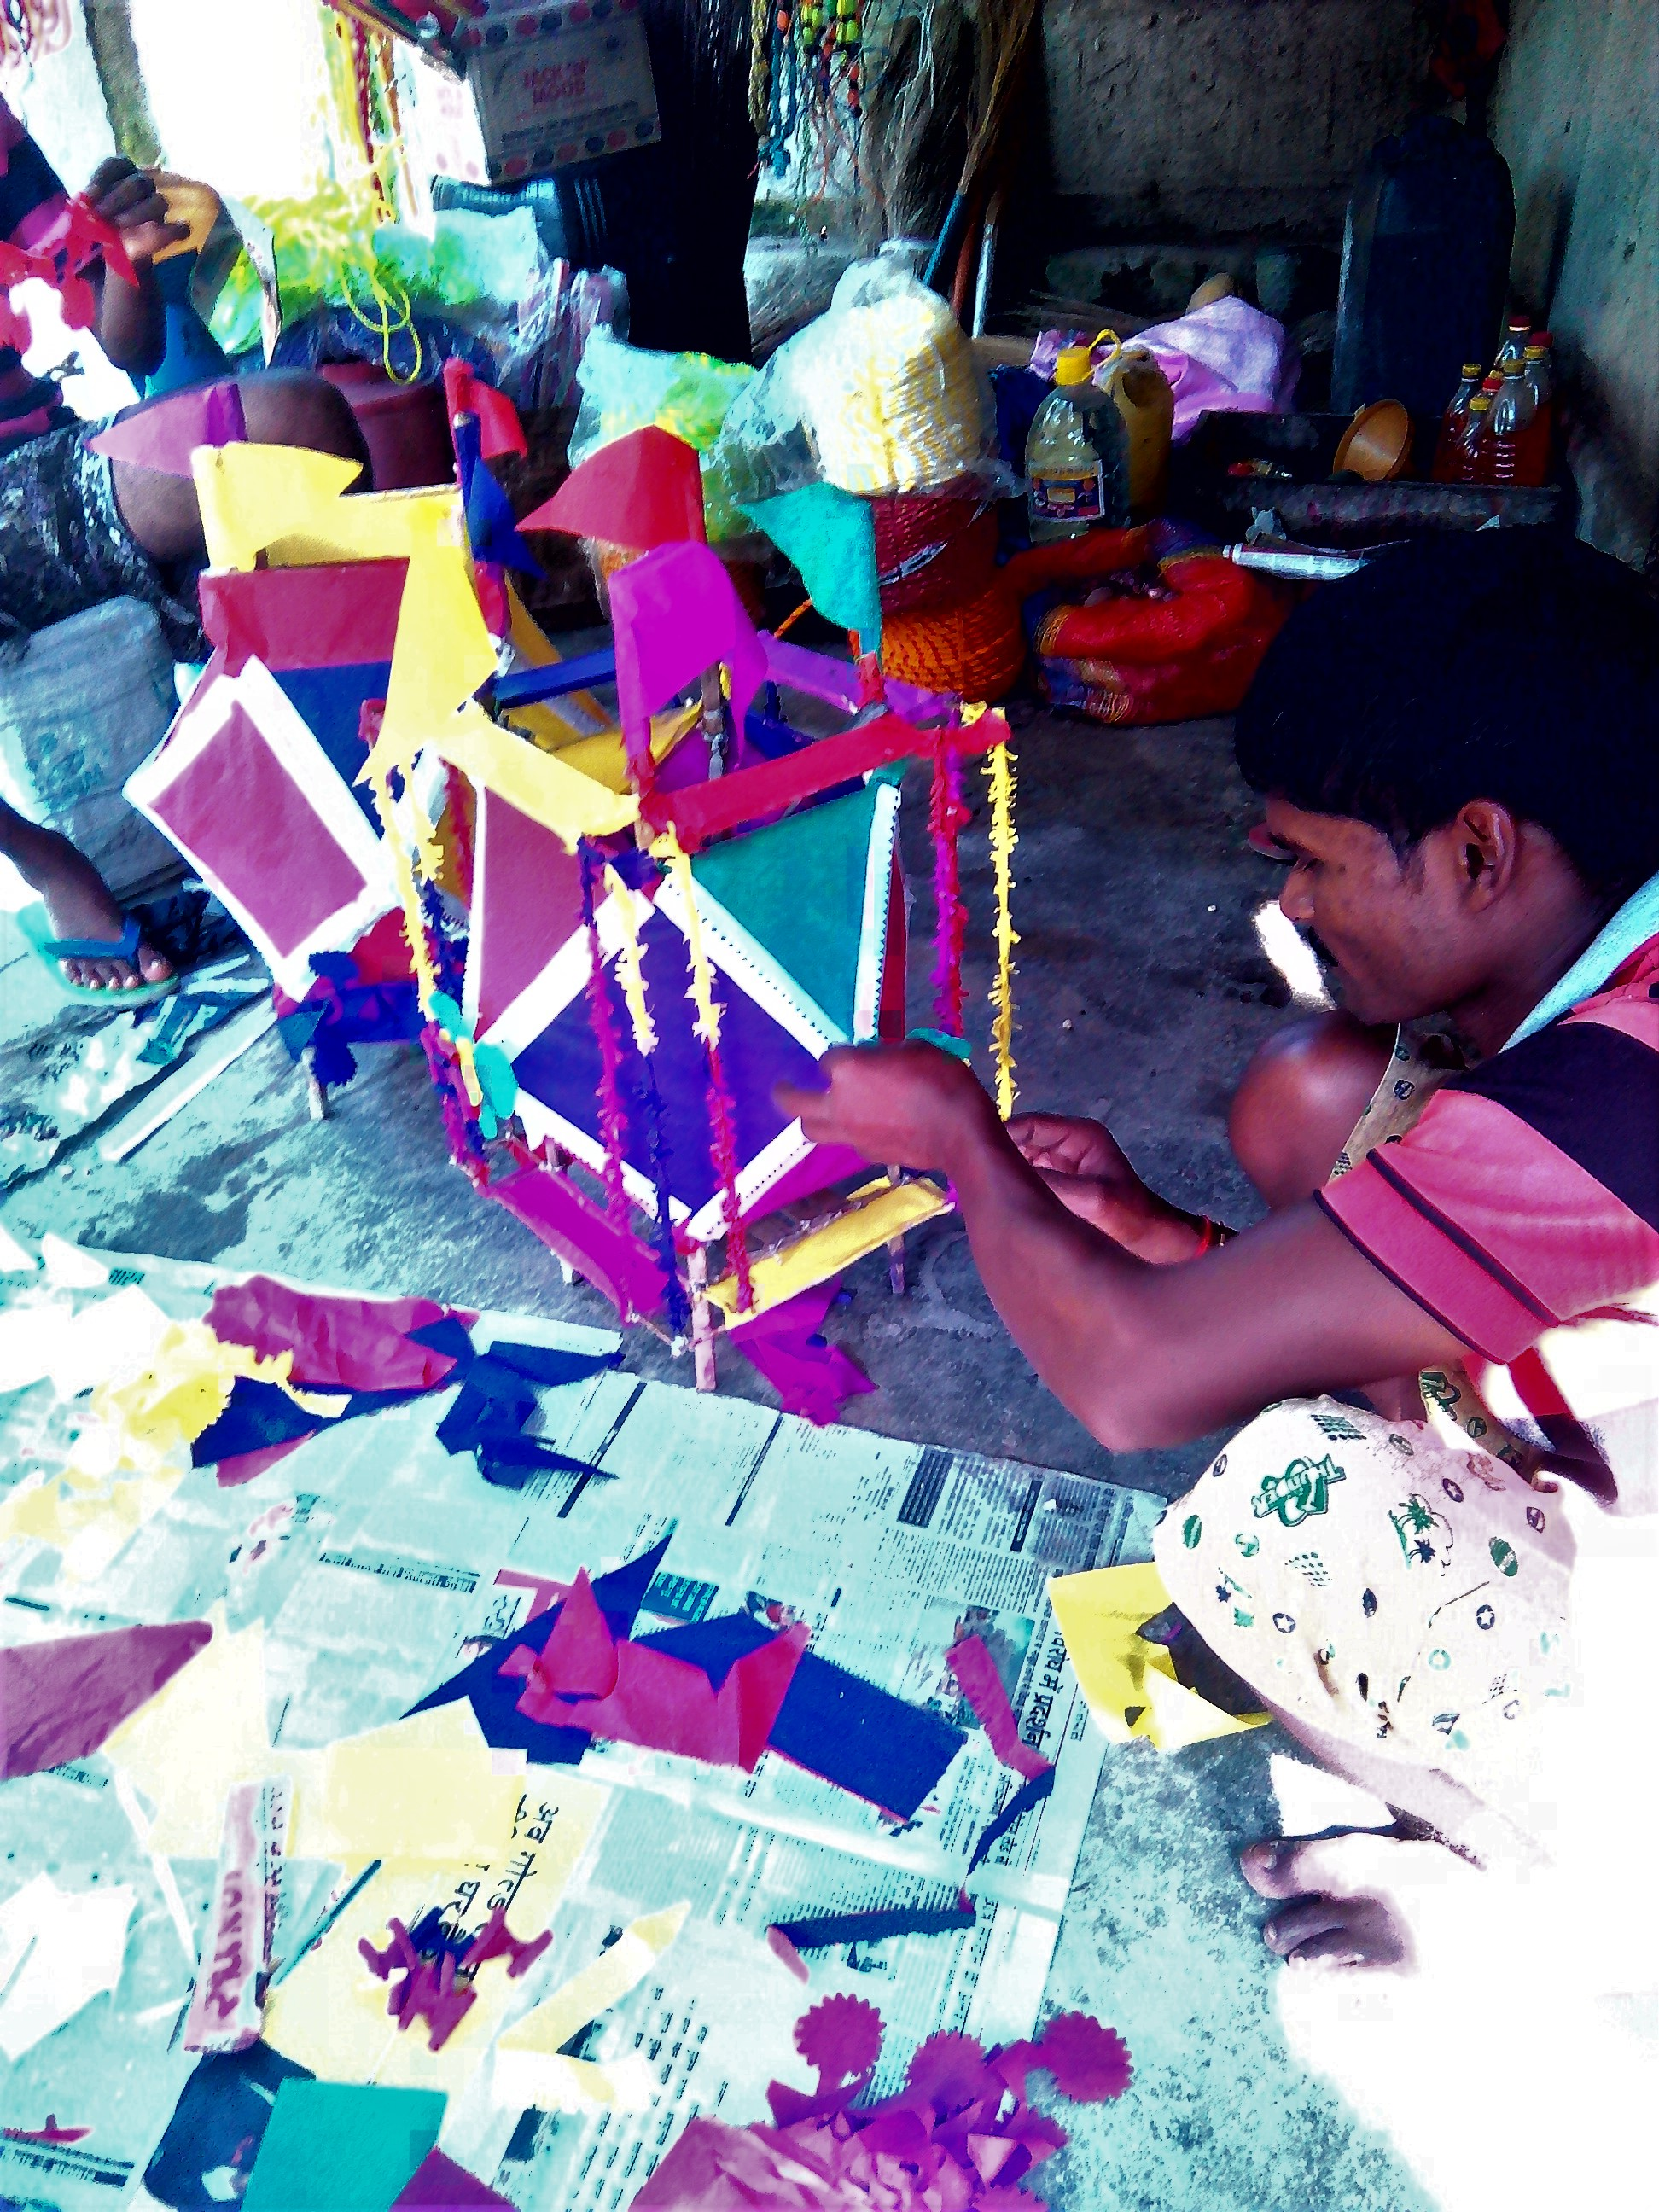 A shopkeeper in a village in Araria makes decorative pieces called 'Kandil' using colourful papers. Credit: Zaheeb Ajmal